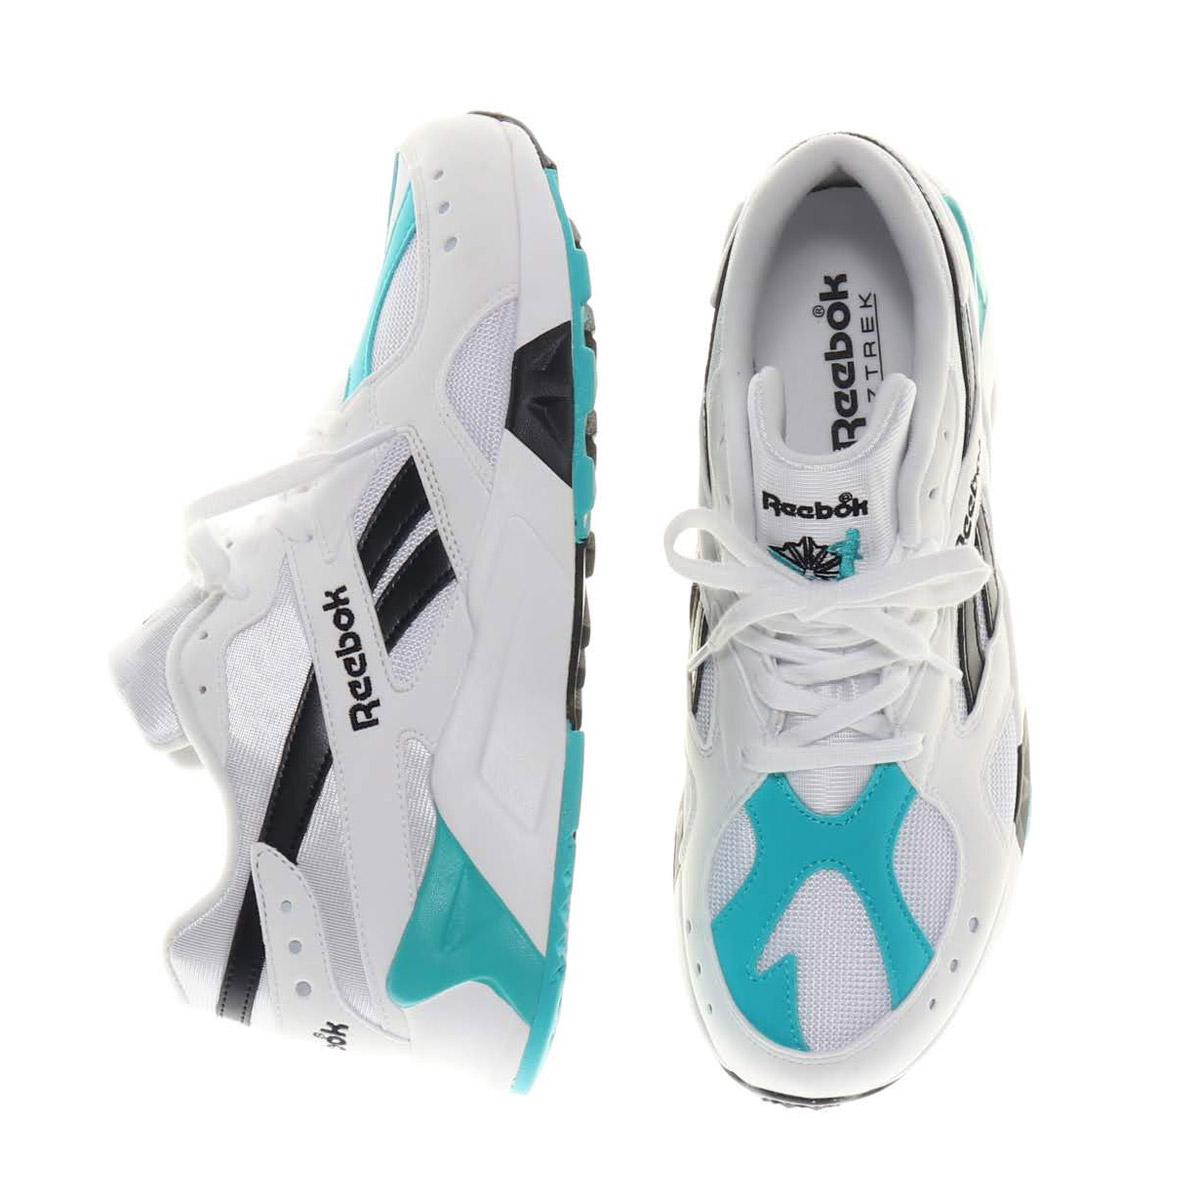 f485237e64b Reebok CLASSIC (Reebok classical music) sneakers. One of the masterpiece  running shoes